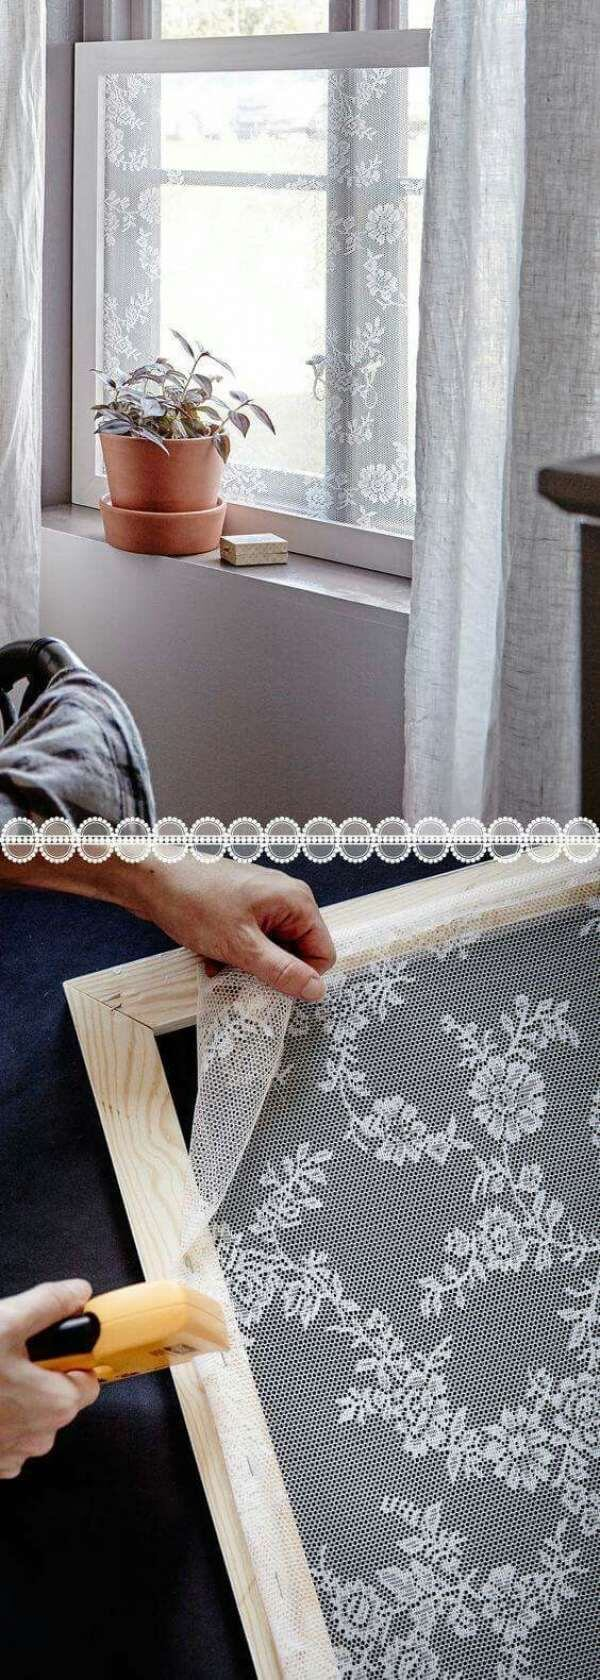 DIY Lace Privacy Windows.